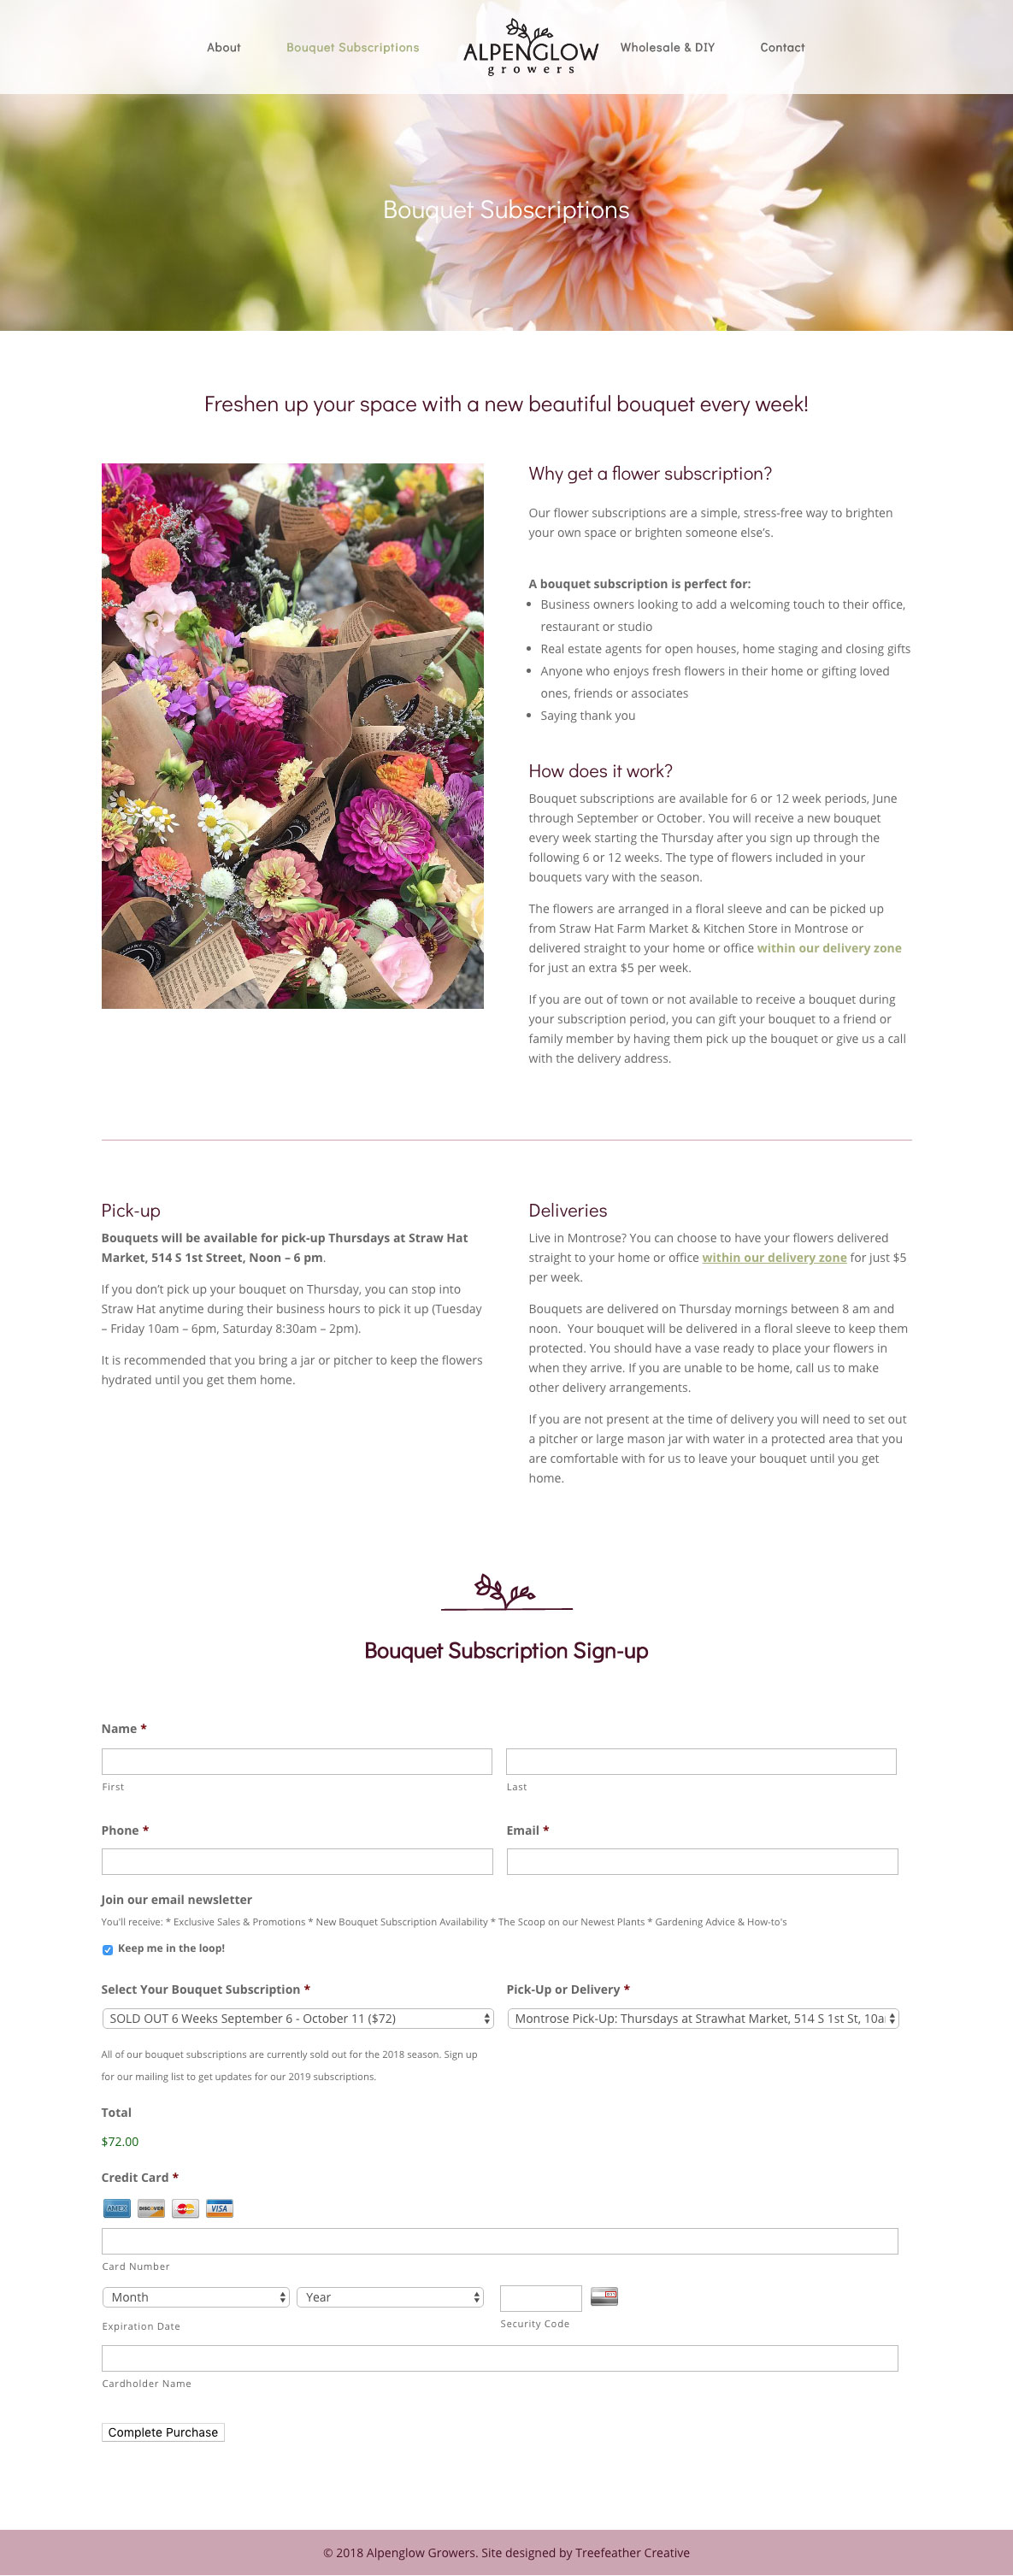 Flower-Subscriptions---Alpenglow-Growers---Locally-Grown-Specialty-Flowers-in-Montrose-Colorado